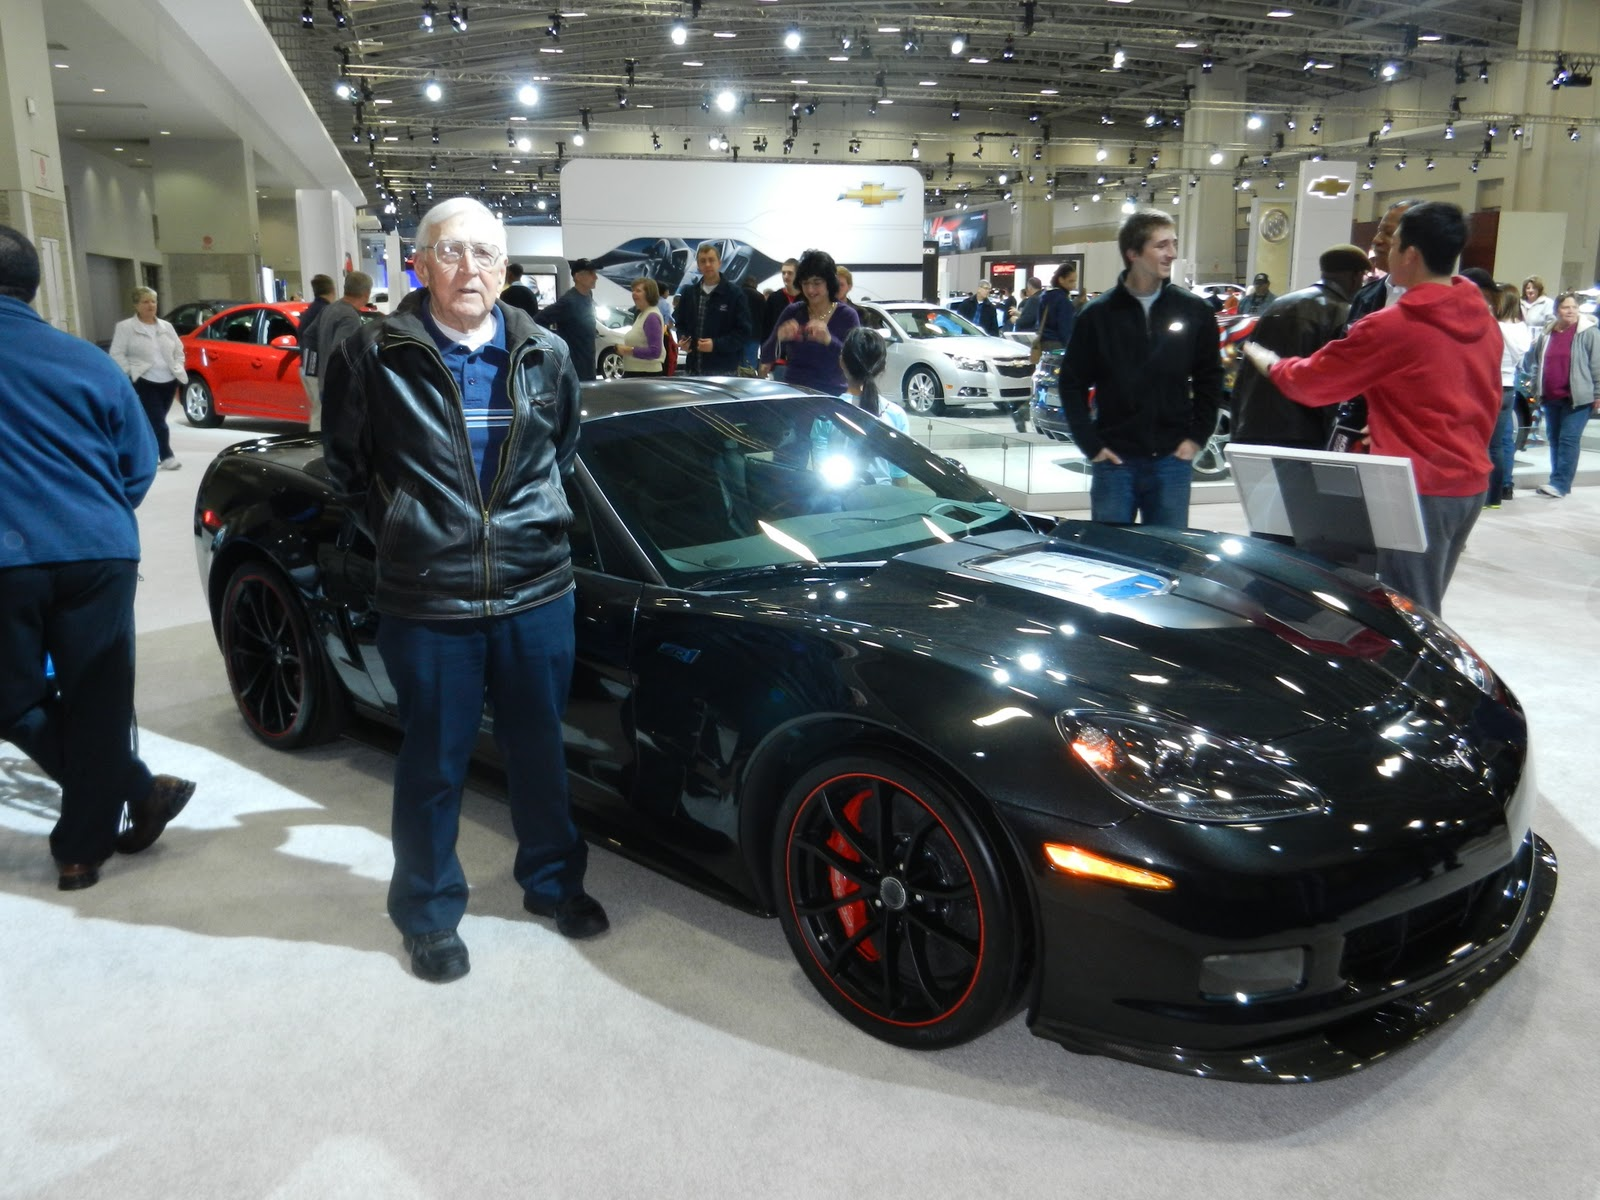 Photons And Electrons Washington DC Auto Show With Slim - Washington dc car show discount tickets